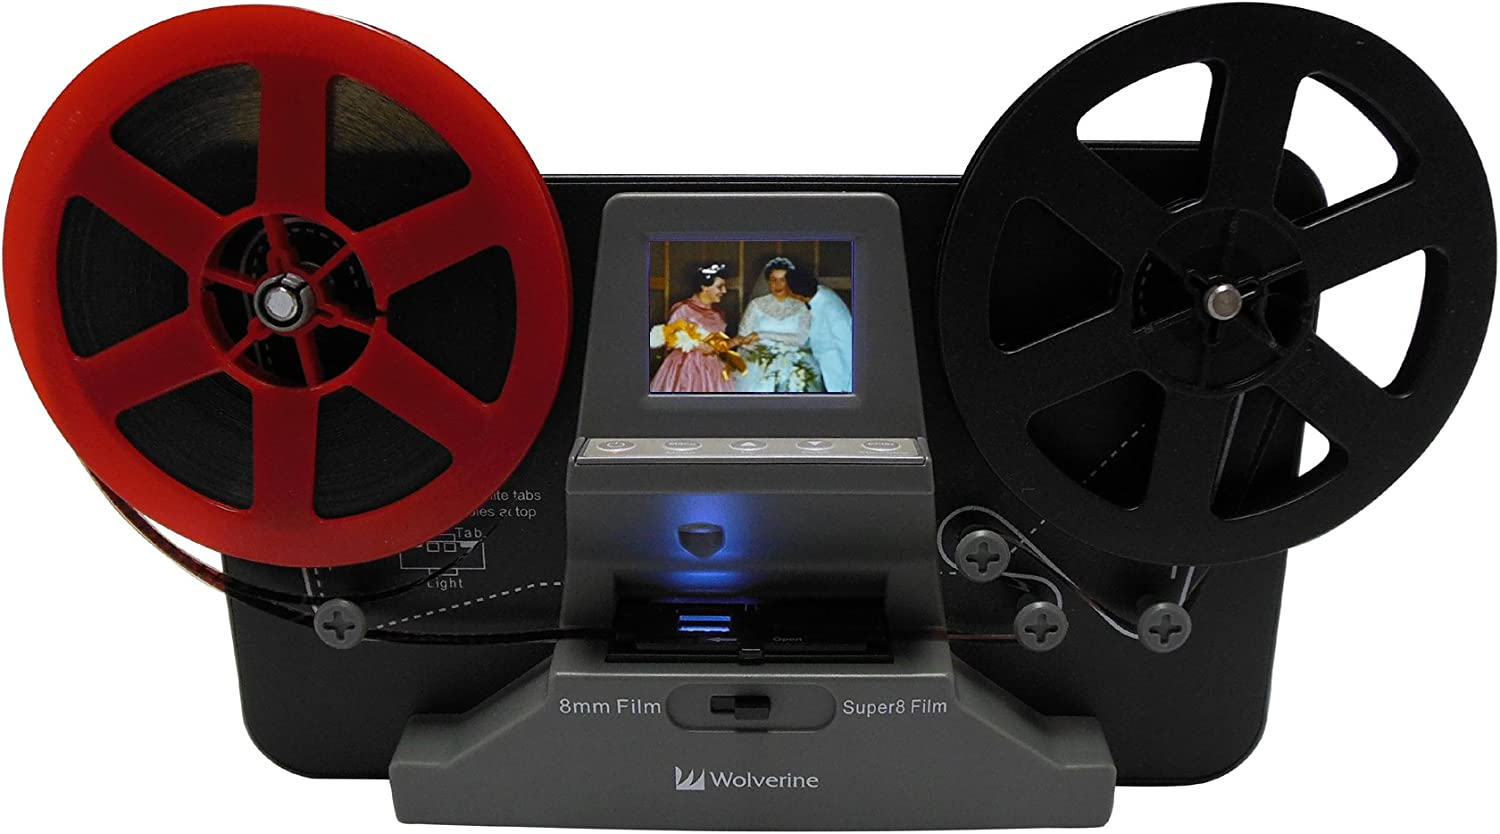 Wolverine 8mm And Super 8 Film Reel Converter Scanner Amazon Co Uk Camera Photo